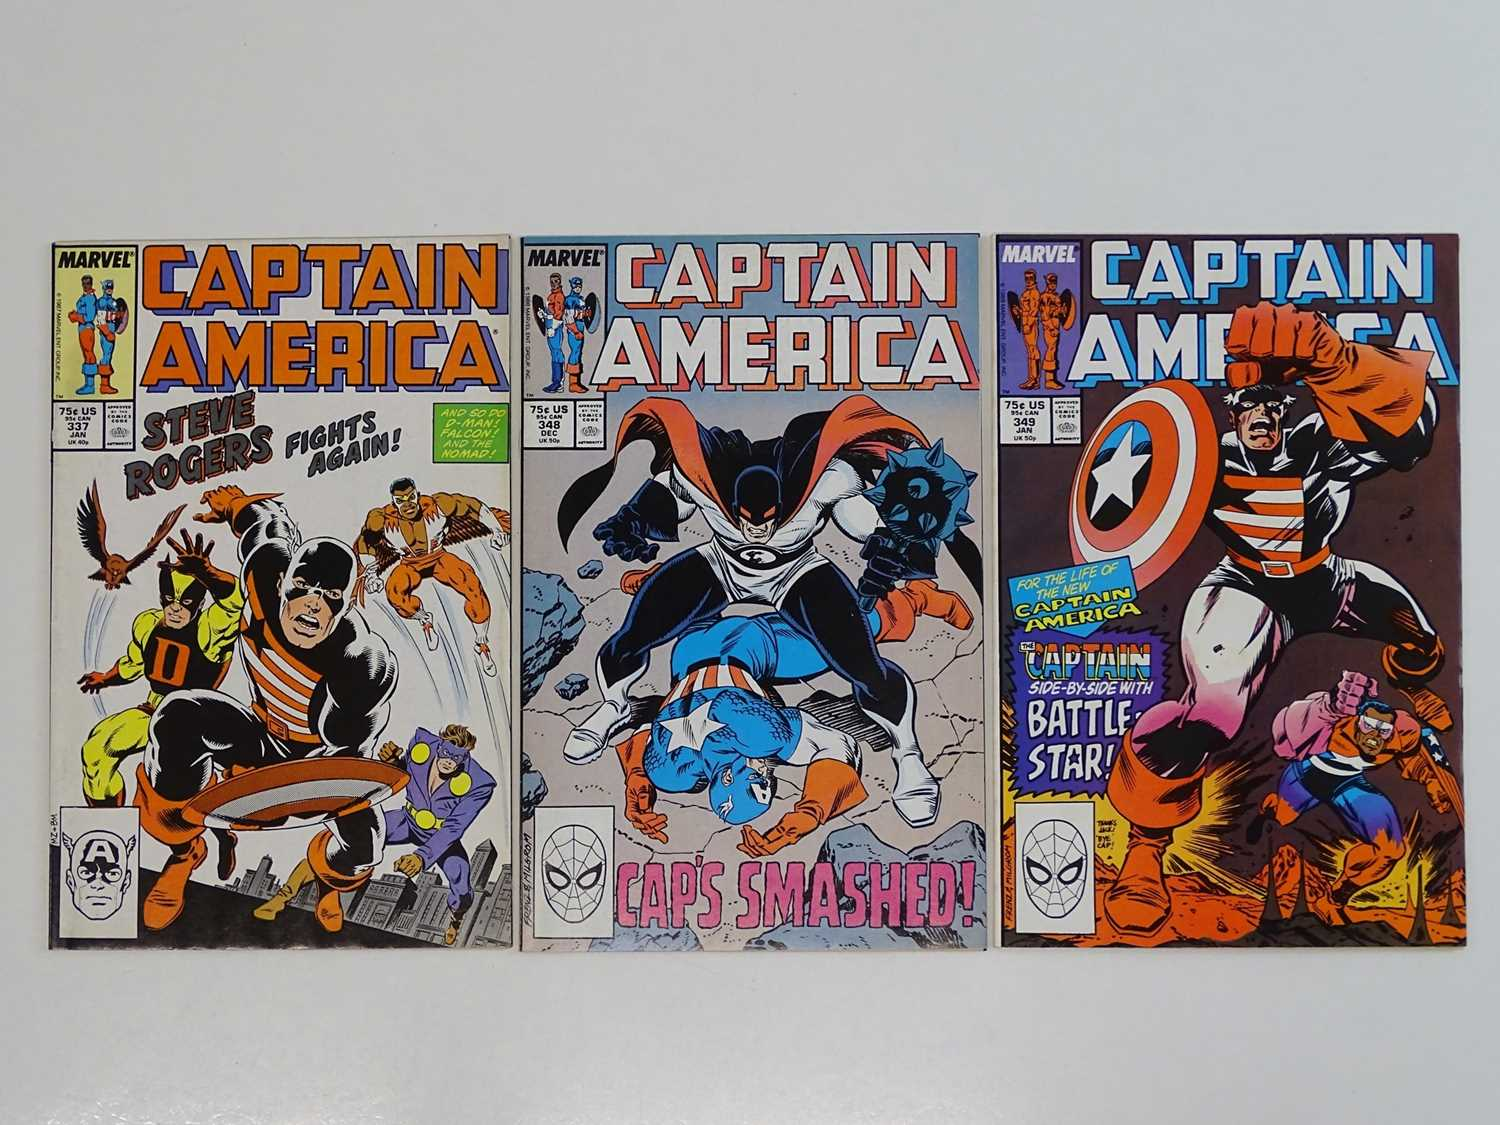 CAPTAIN AMERICA #337, 348, 349 - (3 in Lot) - (1987/88 - MARVEL) - First appearance of US Agent